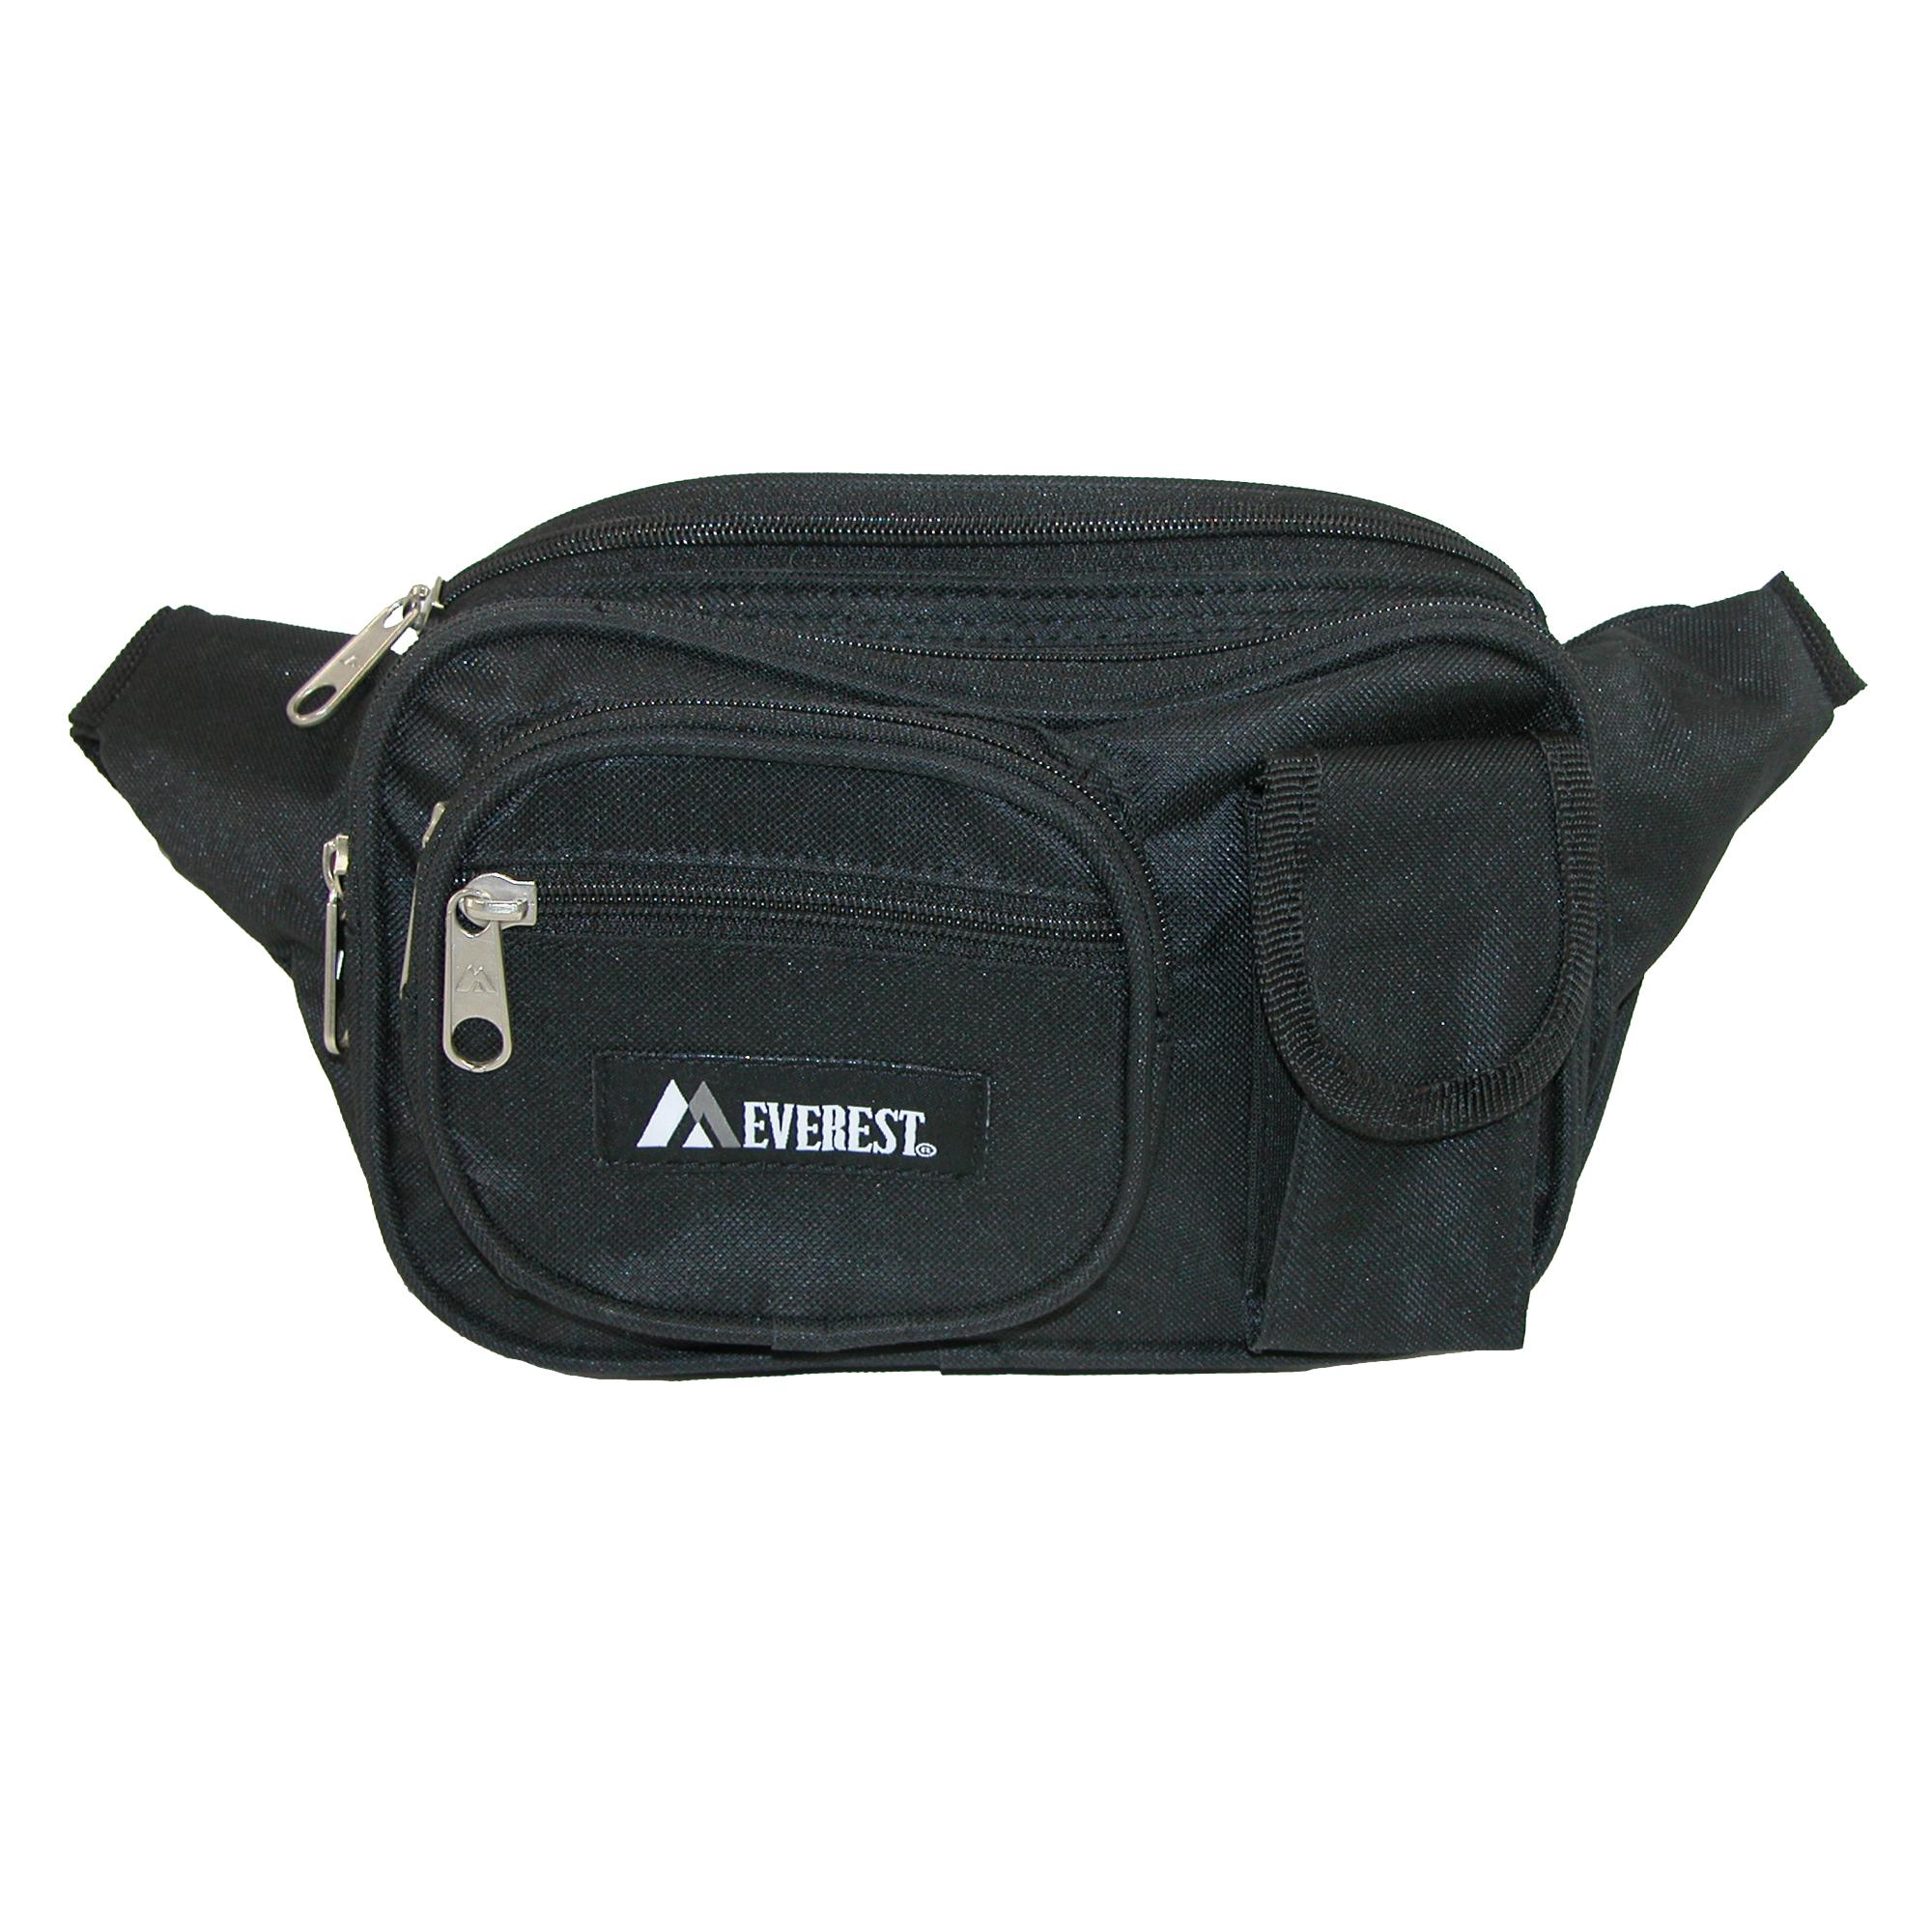 Everest_Fabric_Multiple_Pockets_Waist_Pack_-_Black_one_size